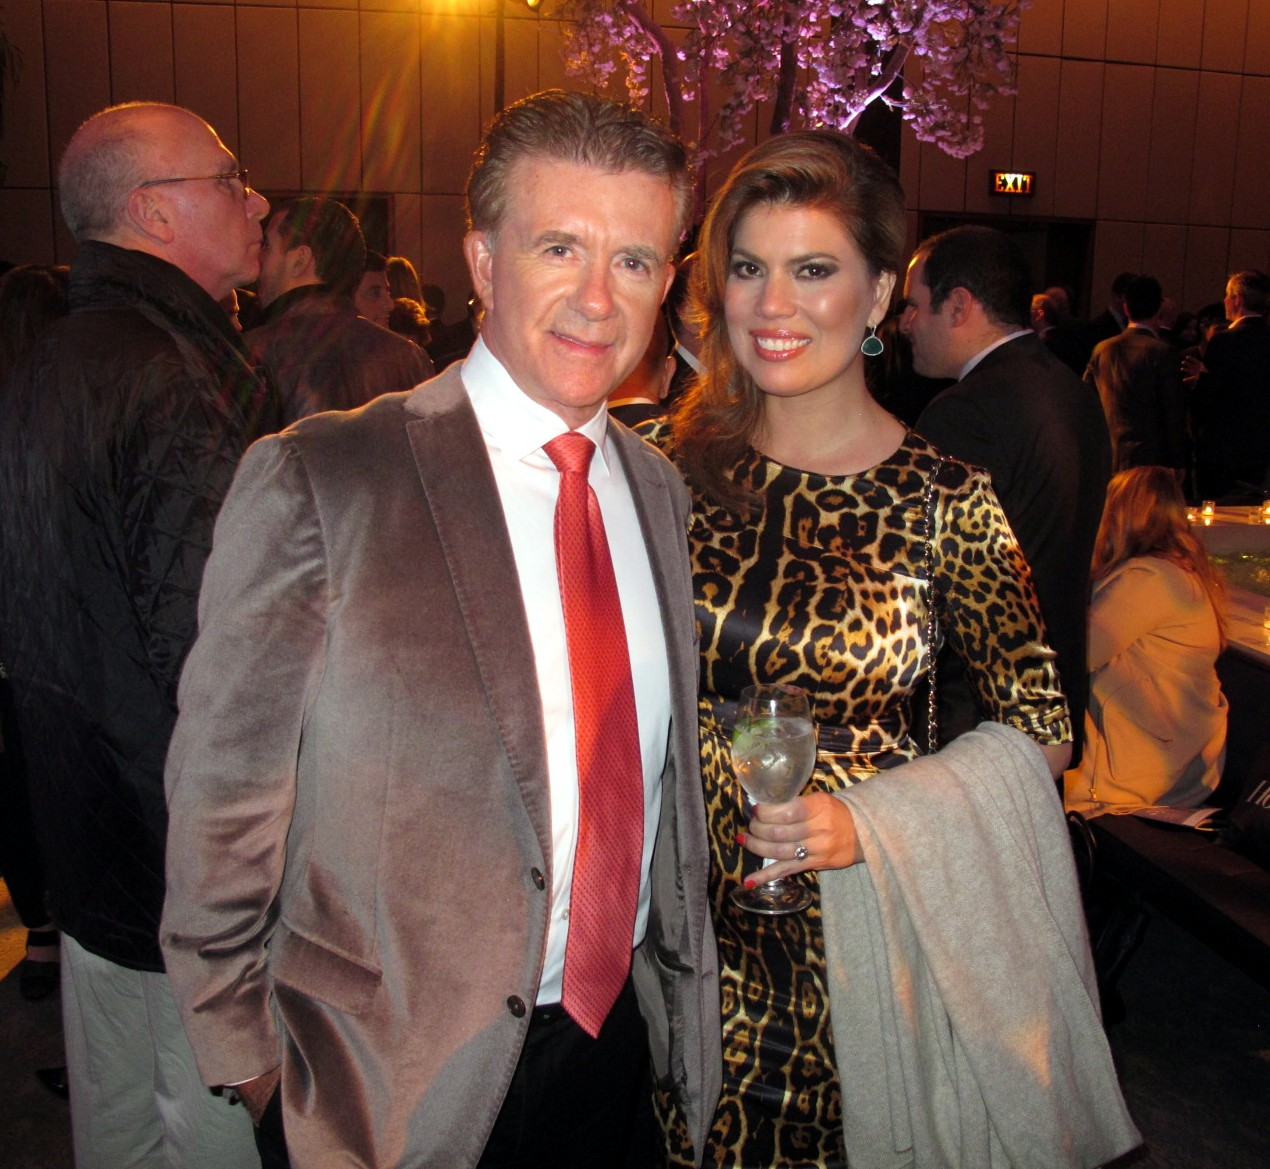 Alan Thicke + Hollywood Reporter + 35 powerful people media